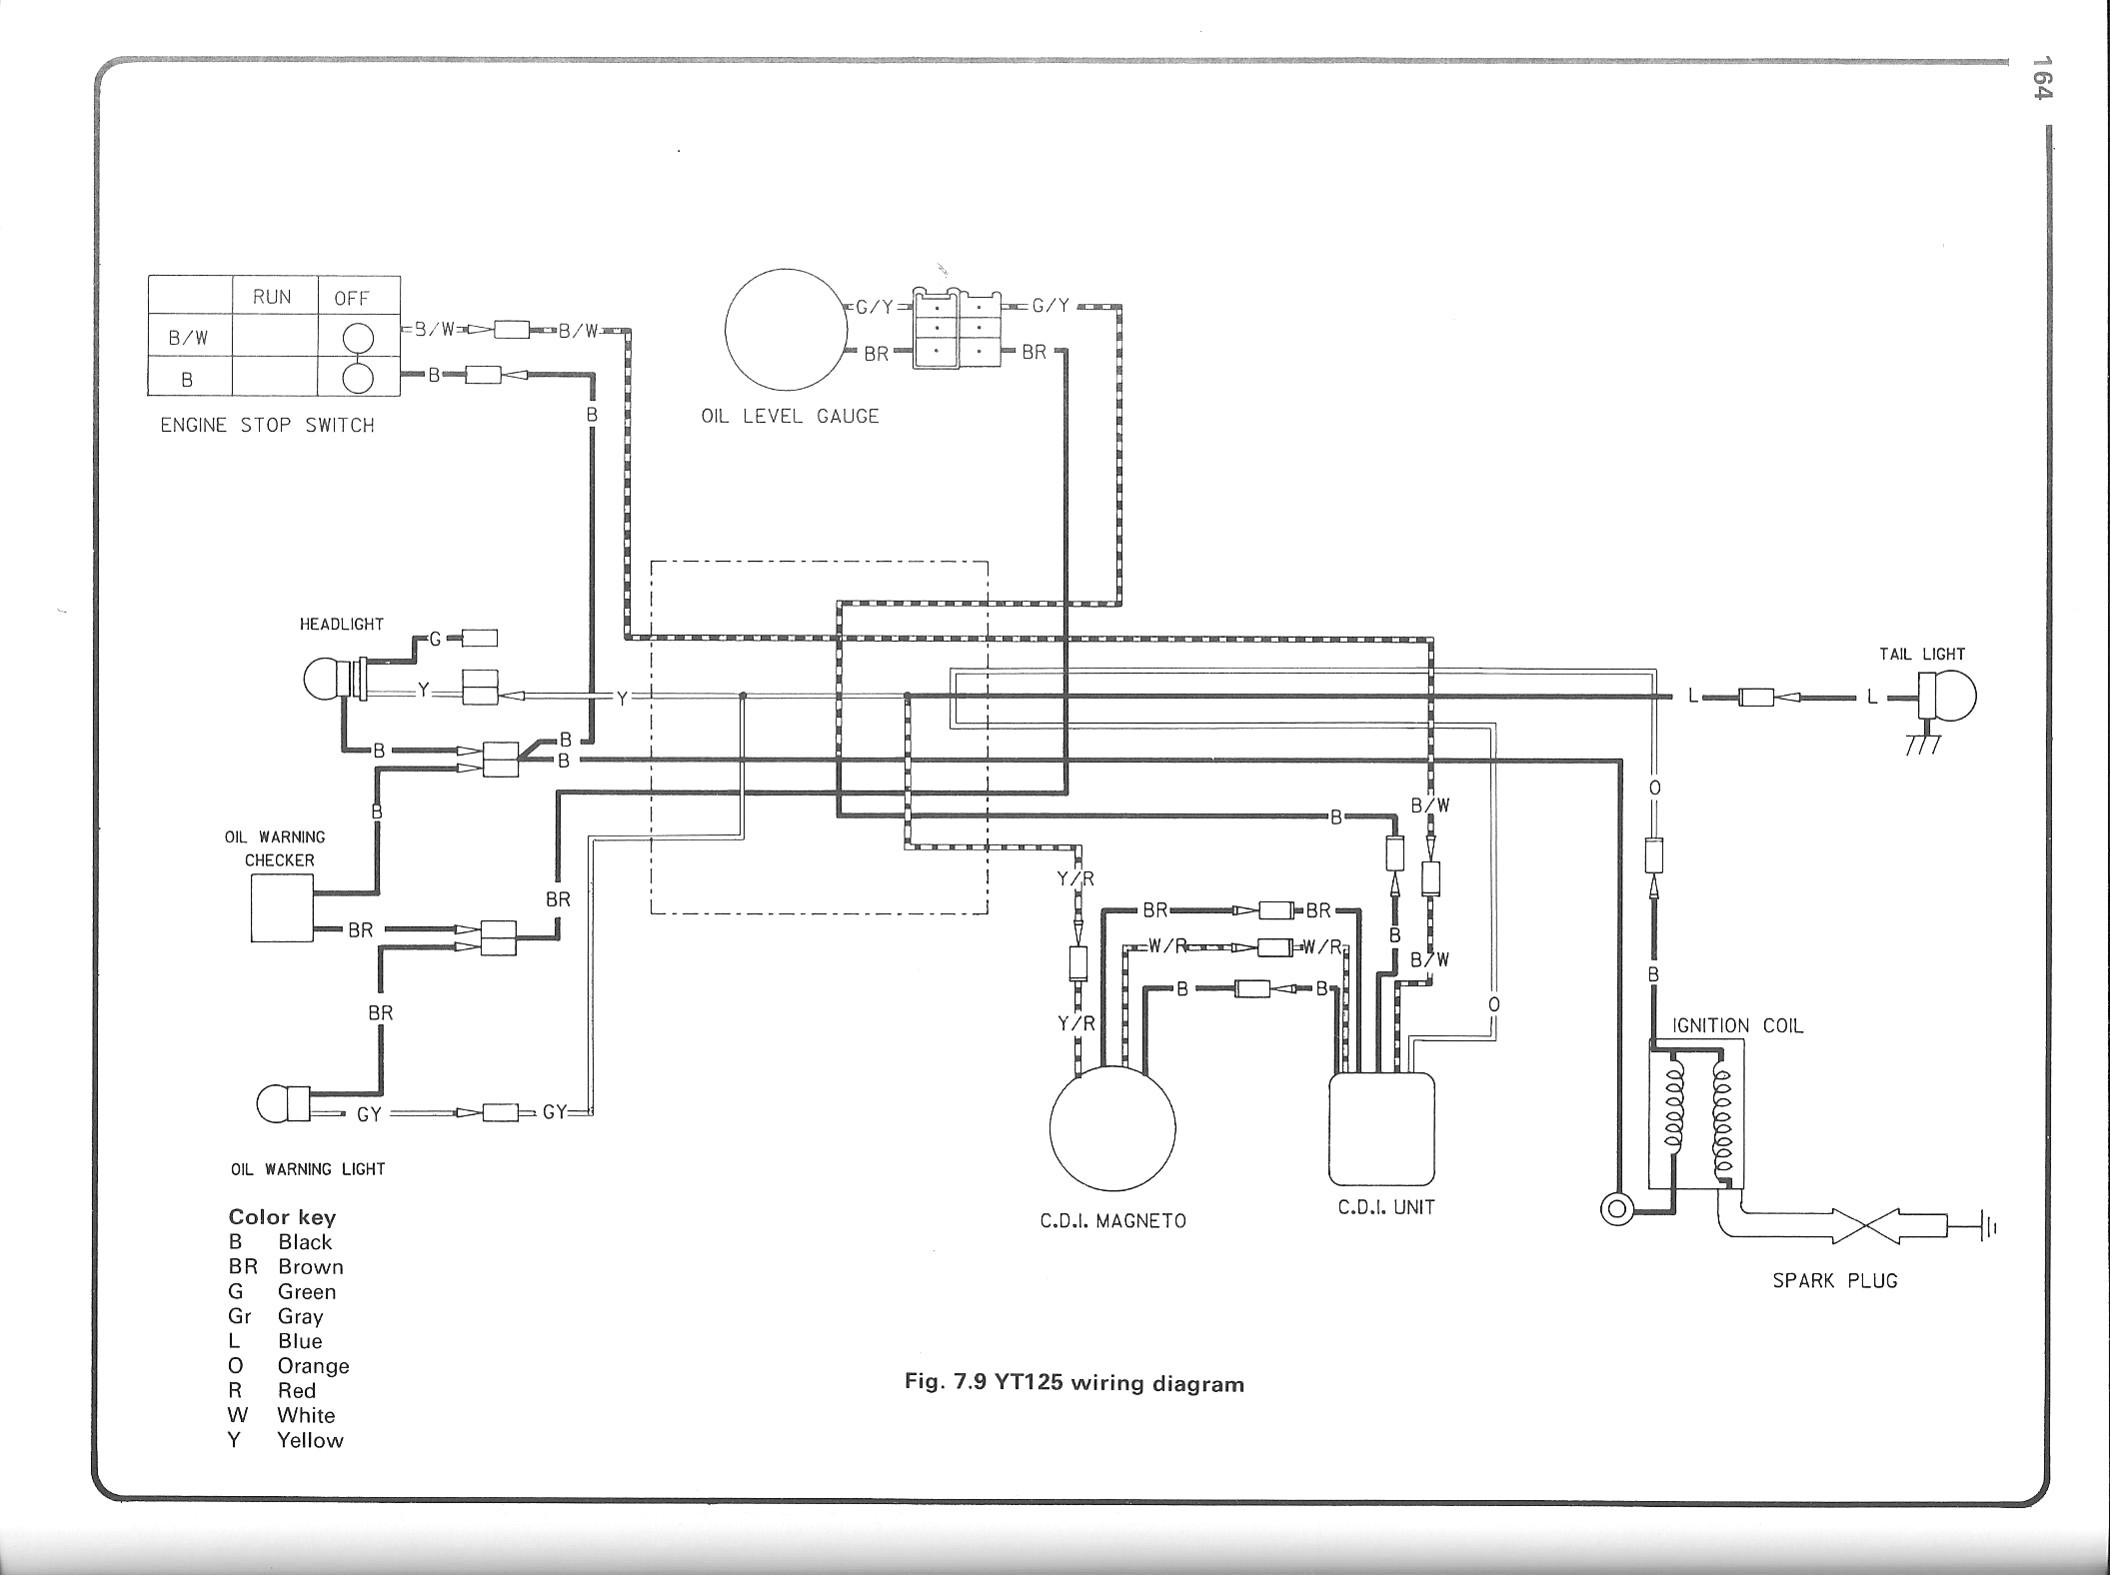 HF_2368] Yamaha Blaster Wiring Diagram Free Download Free Diagram